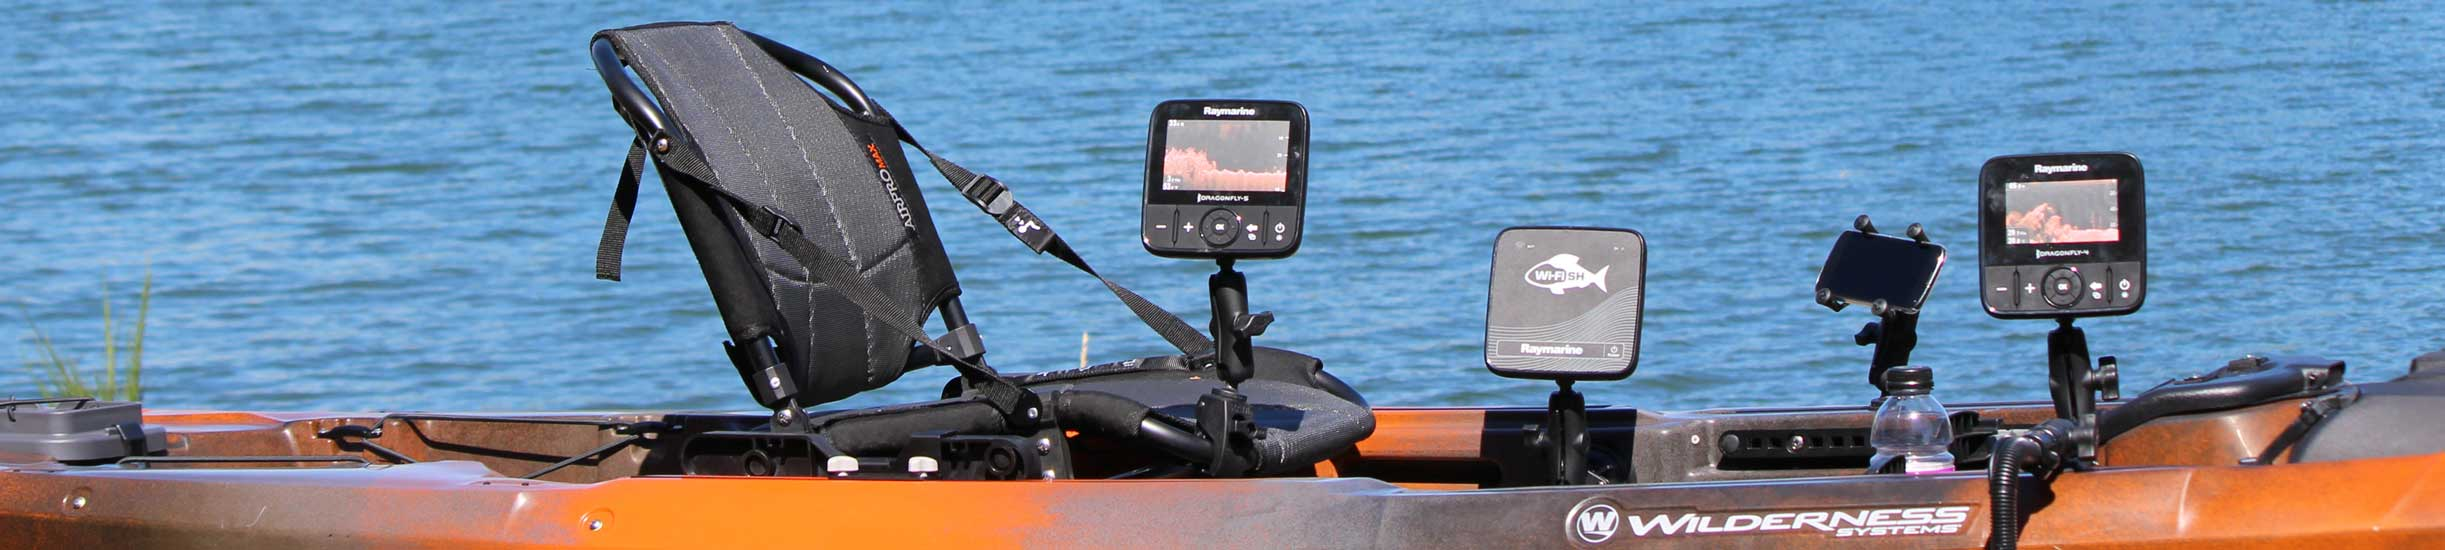 Mounts for Raymarine Devices